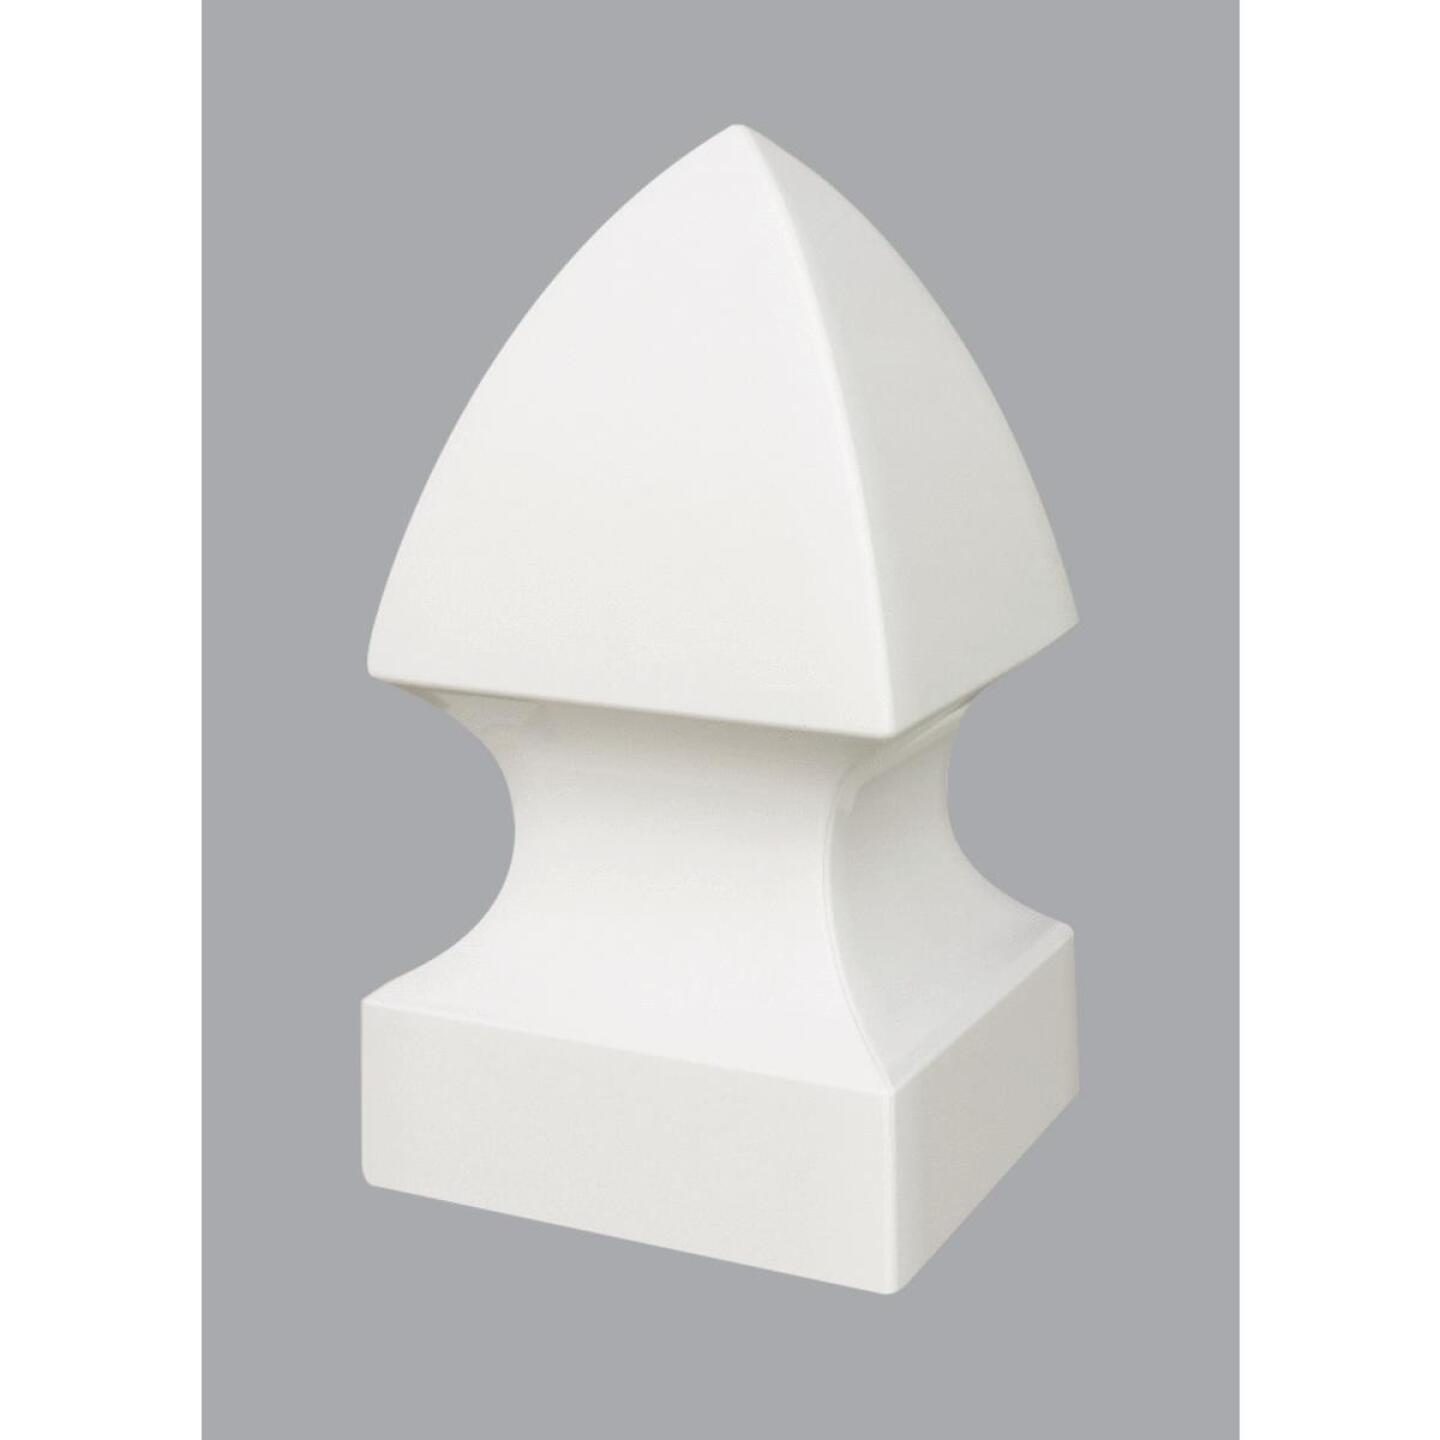 Outdoor Essentials 4 In. x 4 In. White Gothic Vinyl Post Cap Image 1